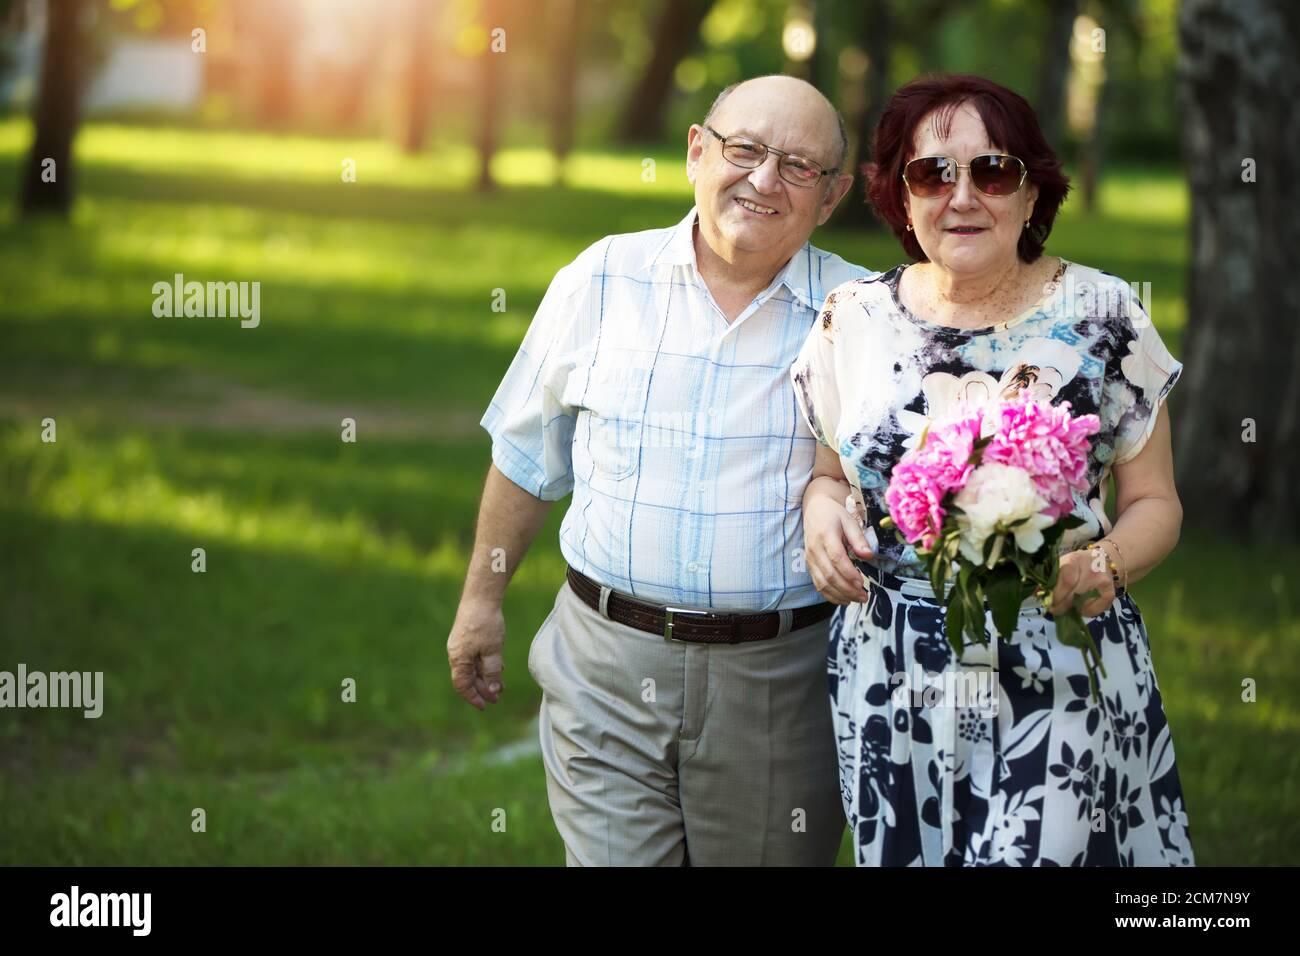 Happy elderly couple. Handsome man and woman senior citizens. Husband and wife of old age for a walk. Stock Photo